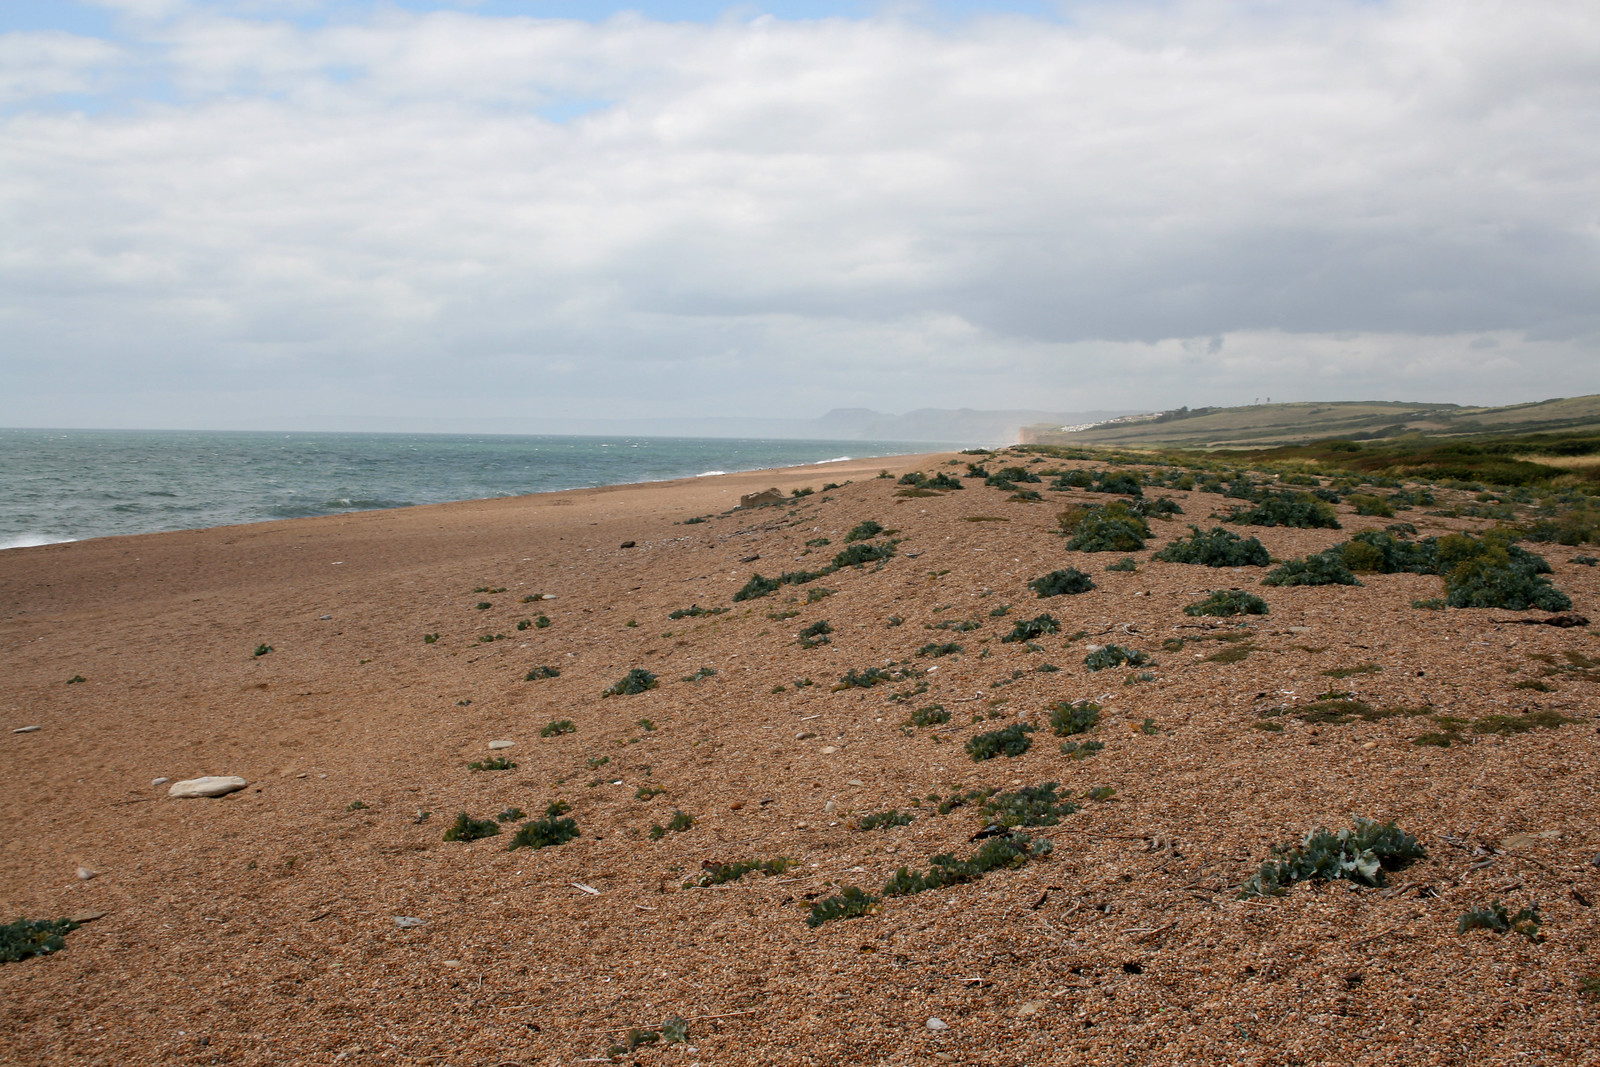 Chesil beach near West Bexington